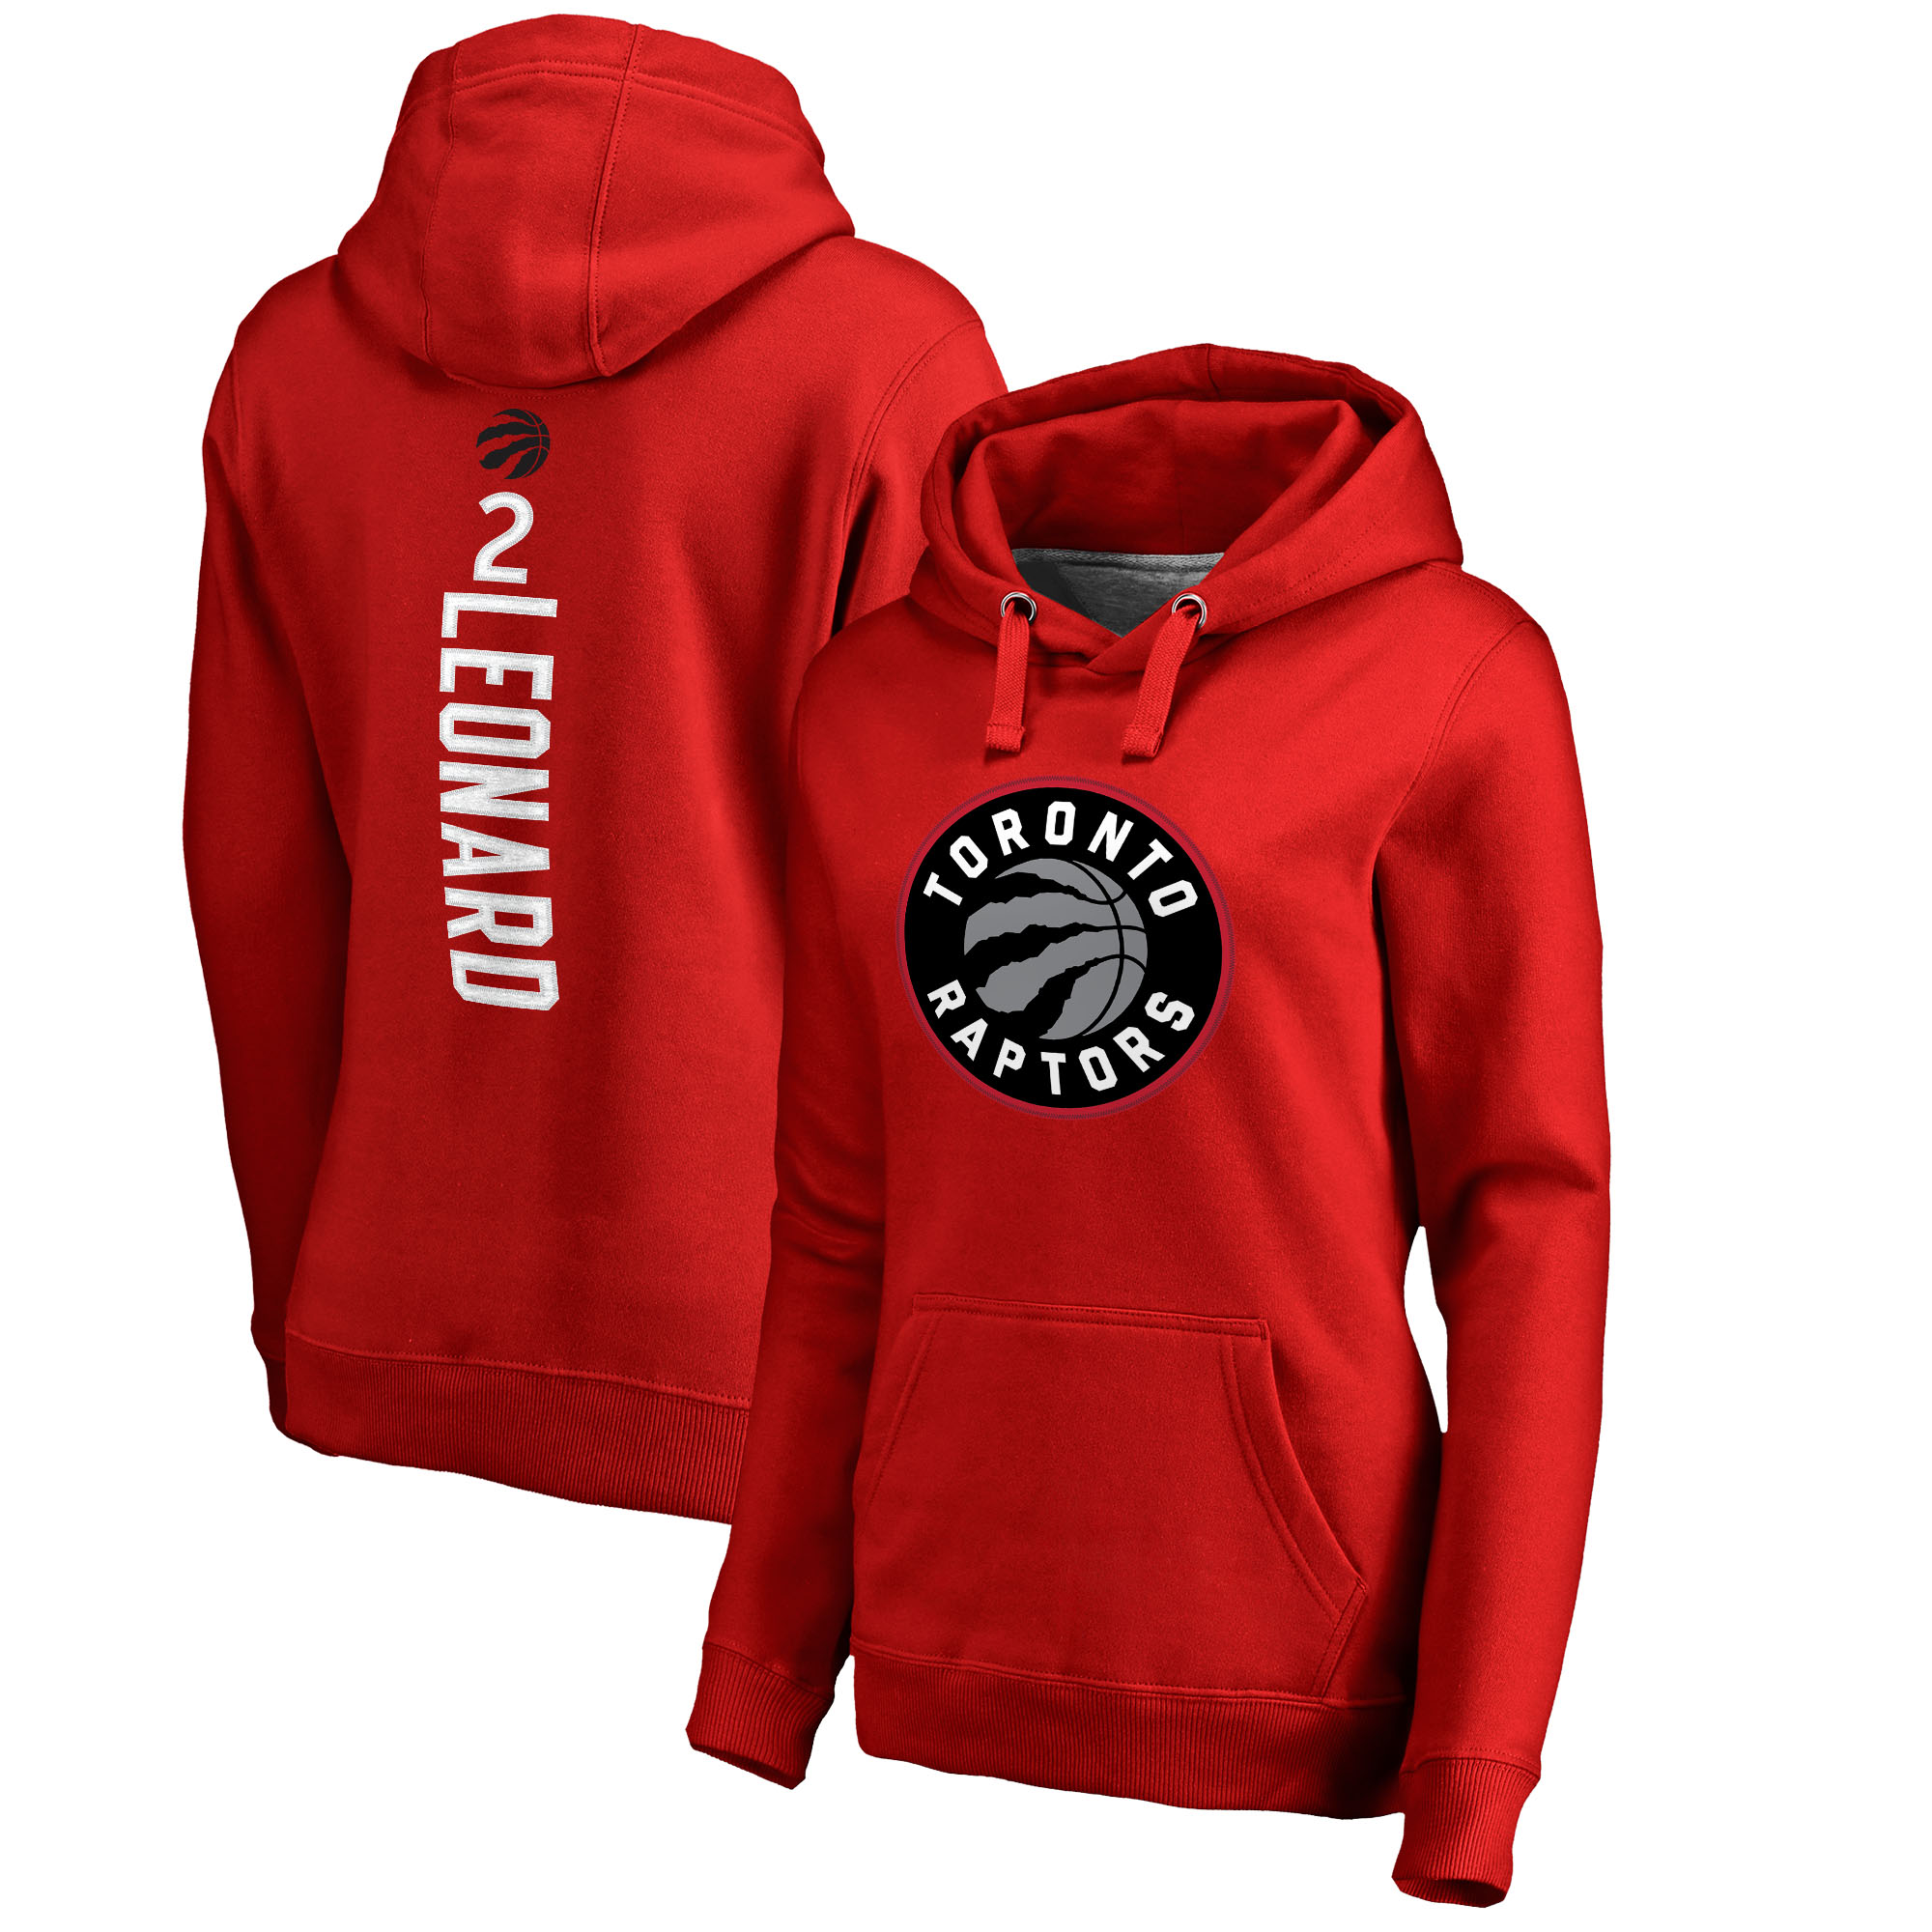 Kawhi Leonard Toronto Raptors Fanatics Branded Women's Team Backer Name & Number Pullover Hoodie - Red